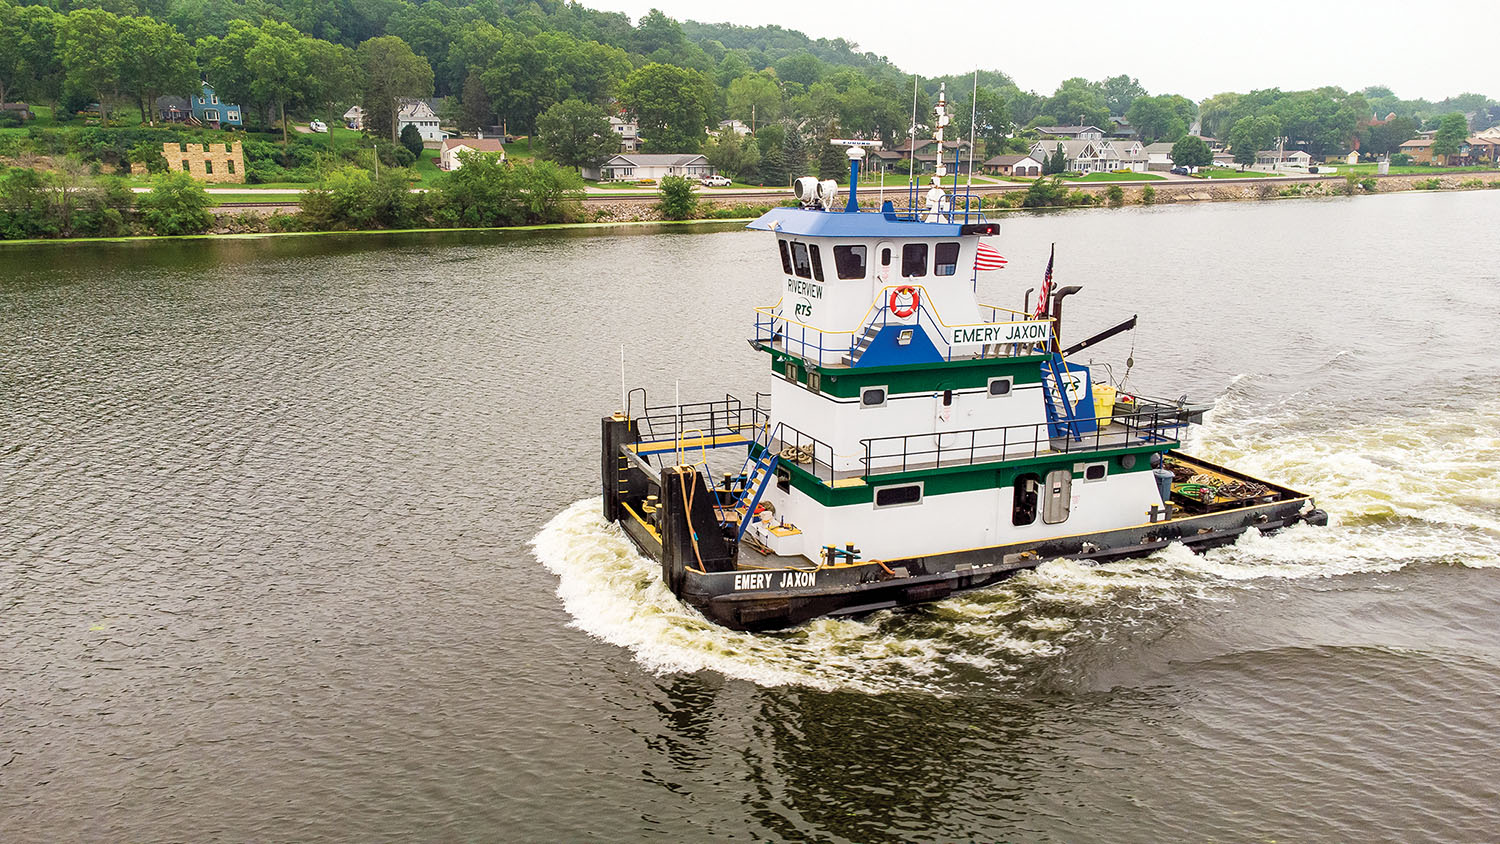 The mv. Emery Jaxon is the eighth vessel in the Riverview Boat Store fleet. (Photo by Mike Yuhas)